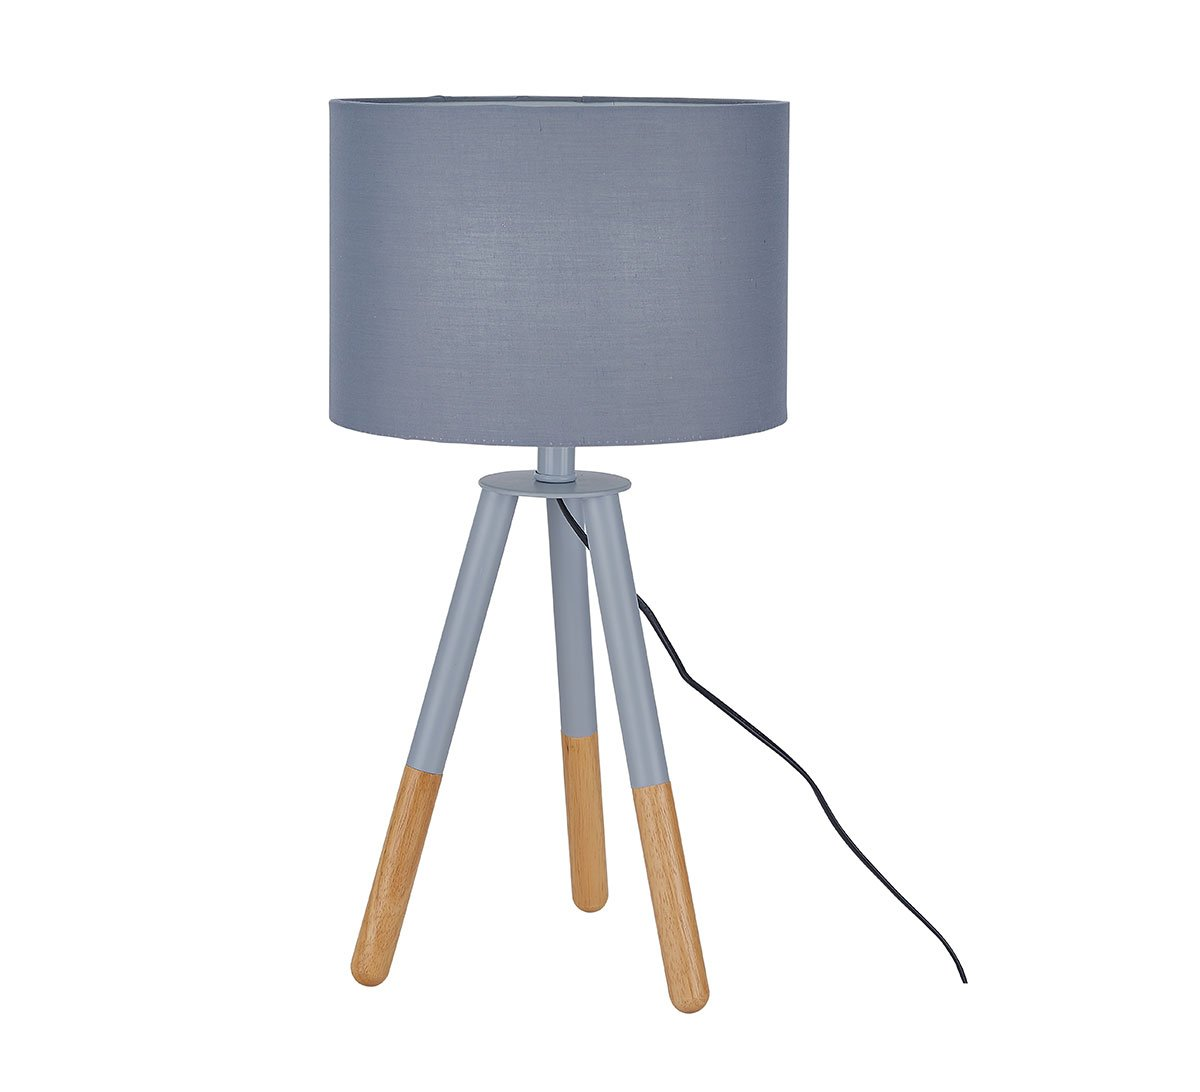 SIT MÖBEL Stojací lampa THIS  THAT – 30 × 30 × 55 cm